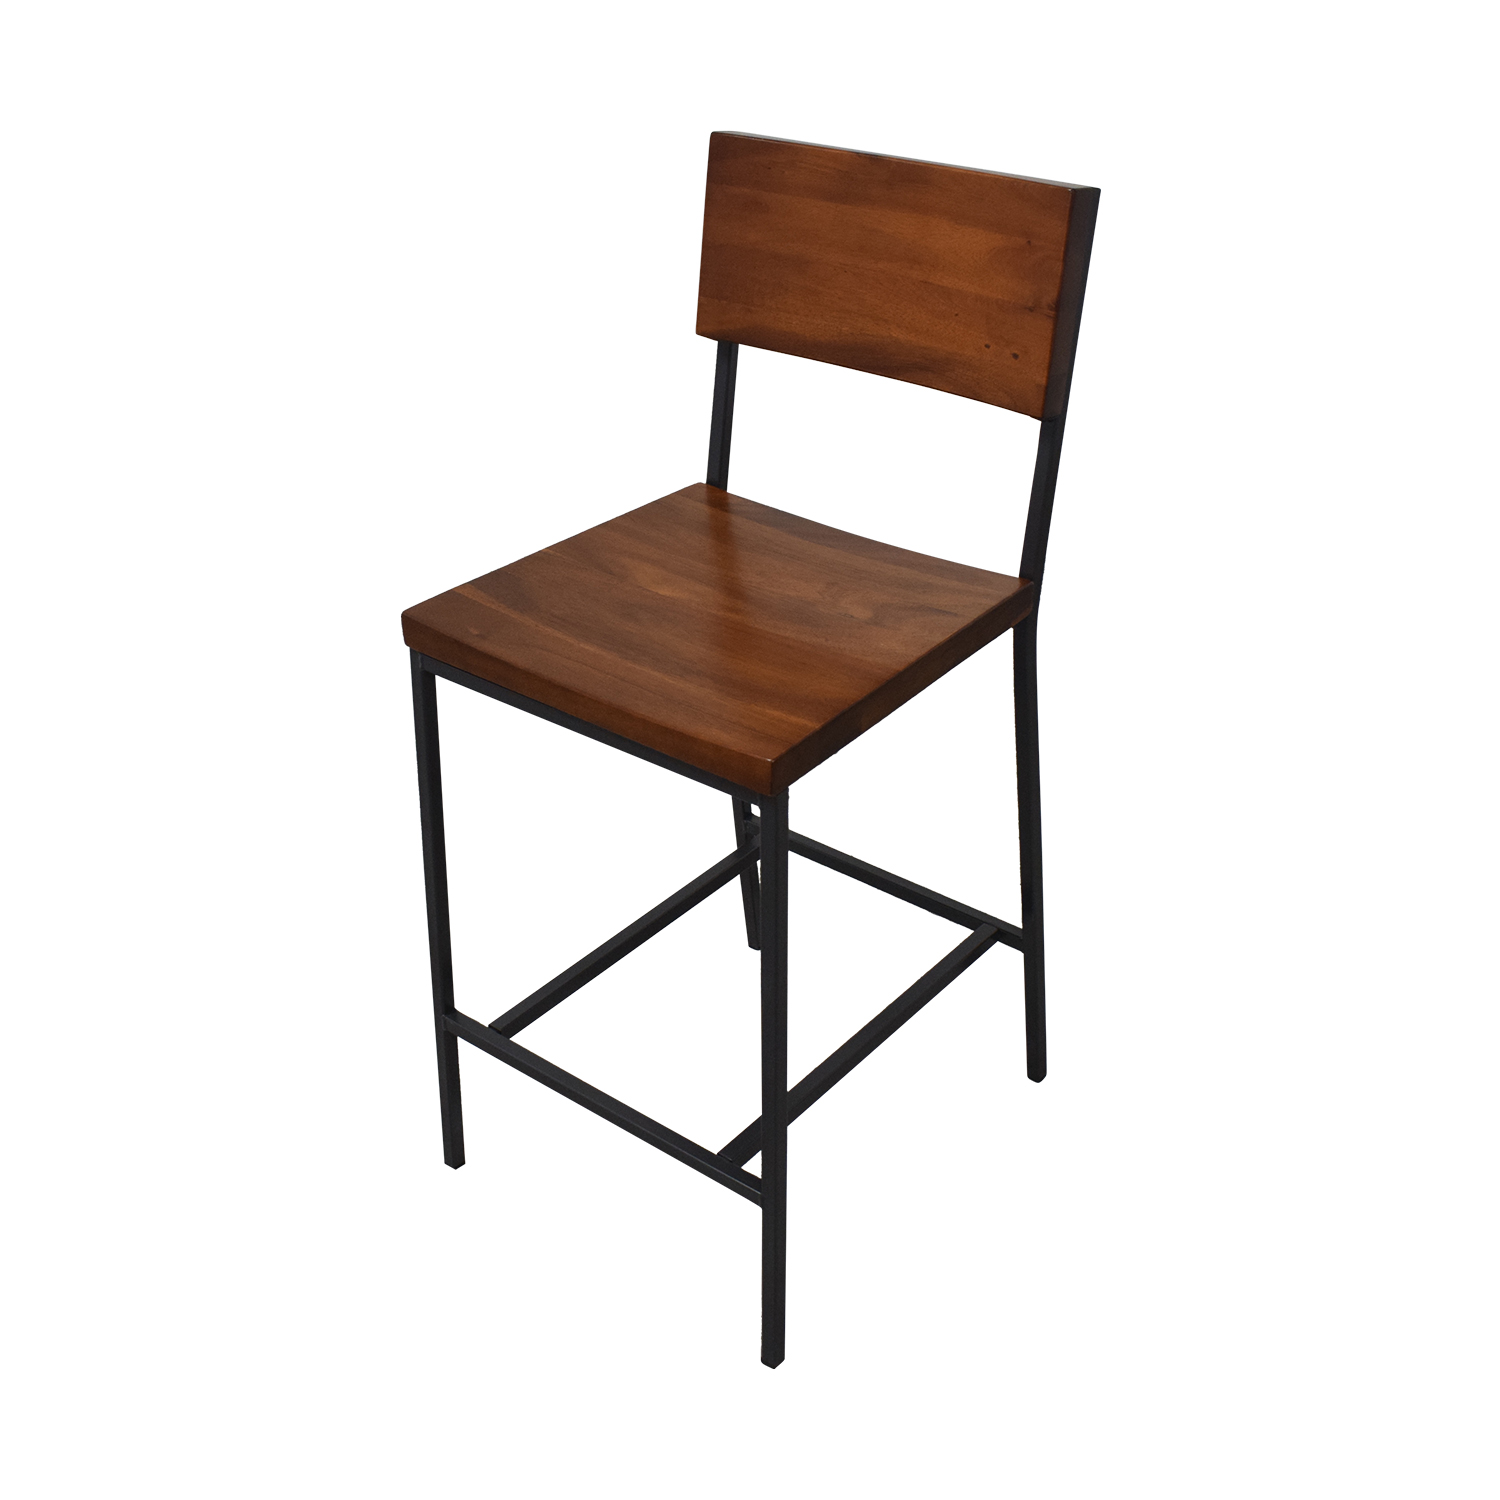 West Elm West Elm Rustic Counter Stool for sale